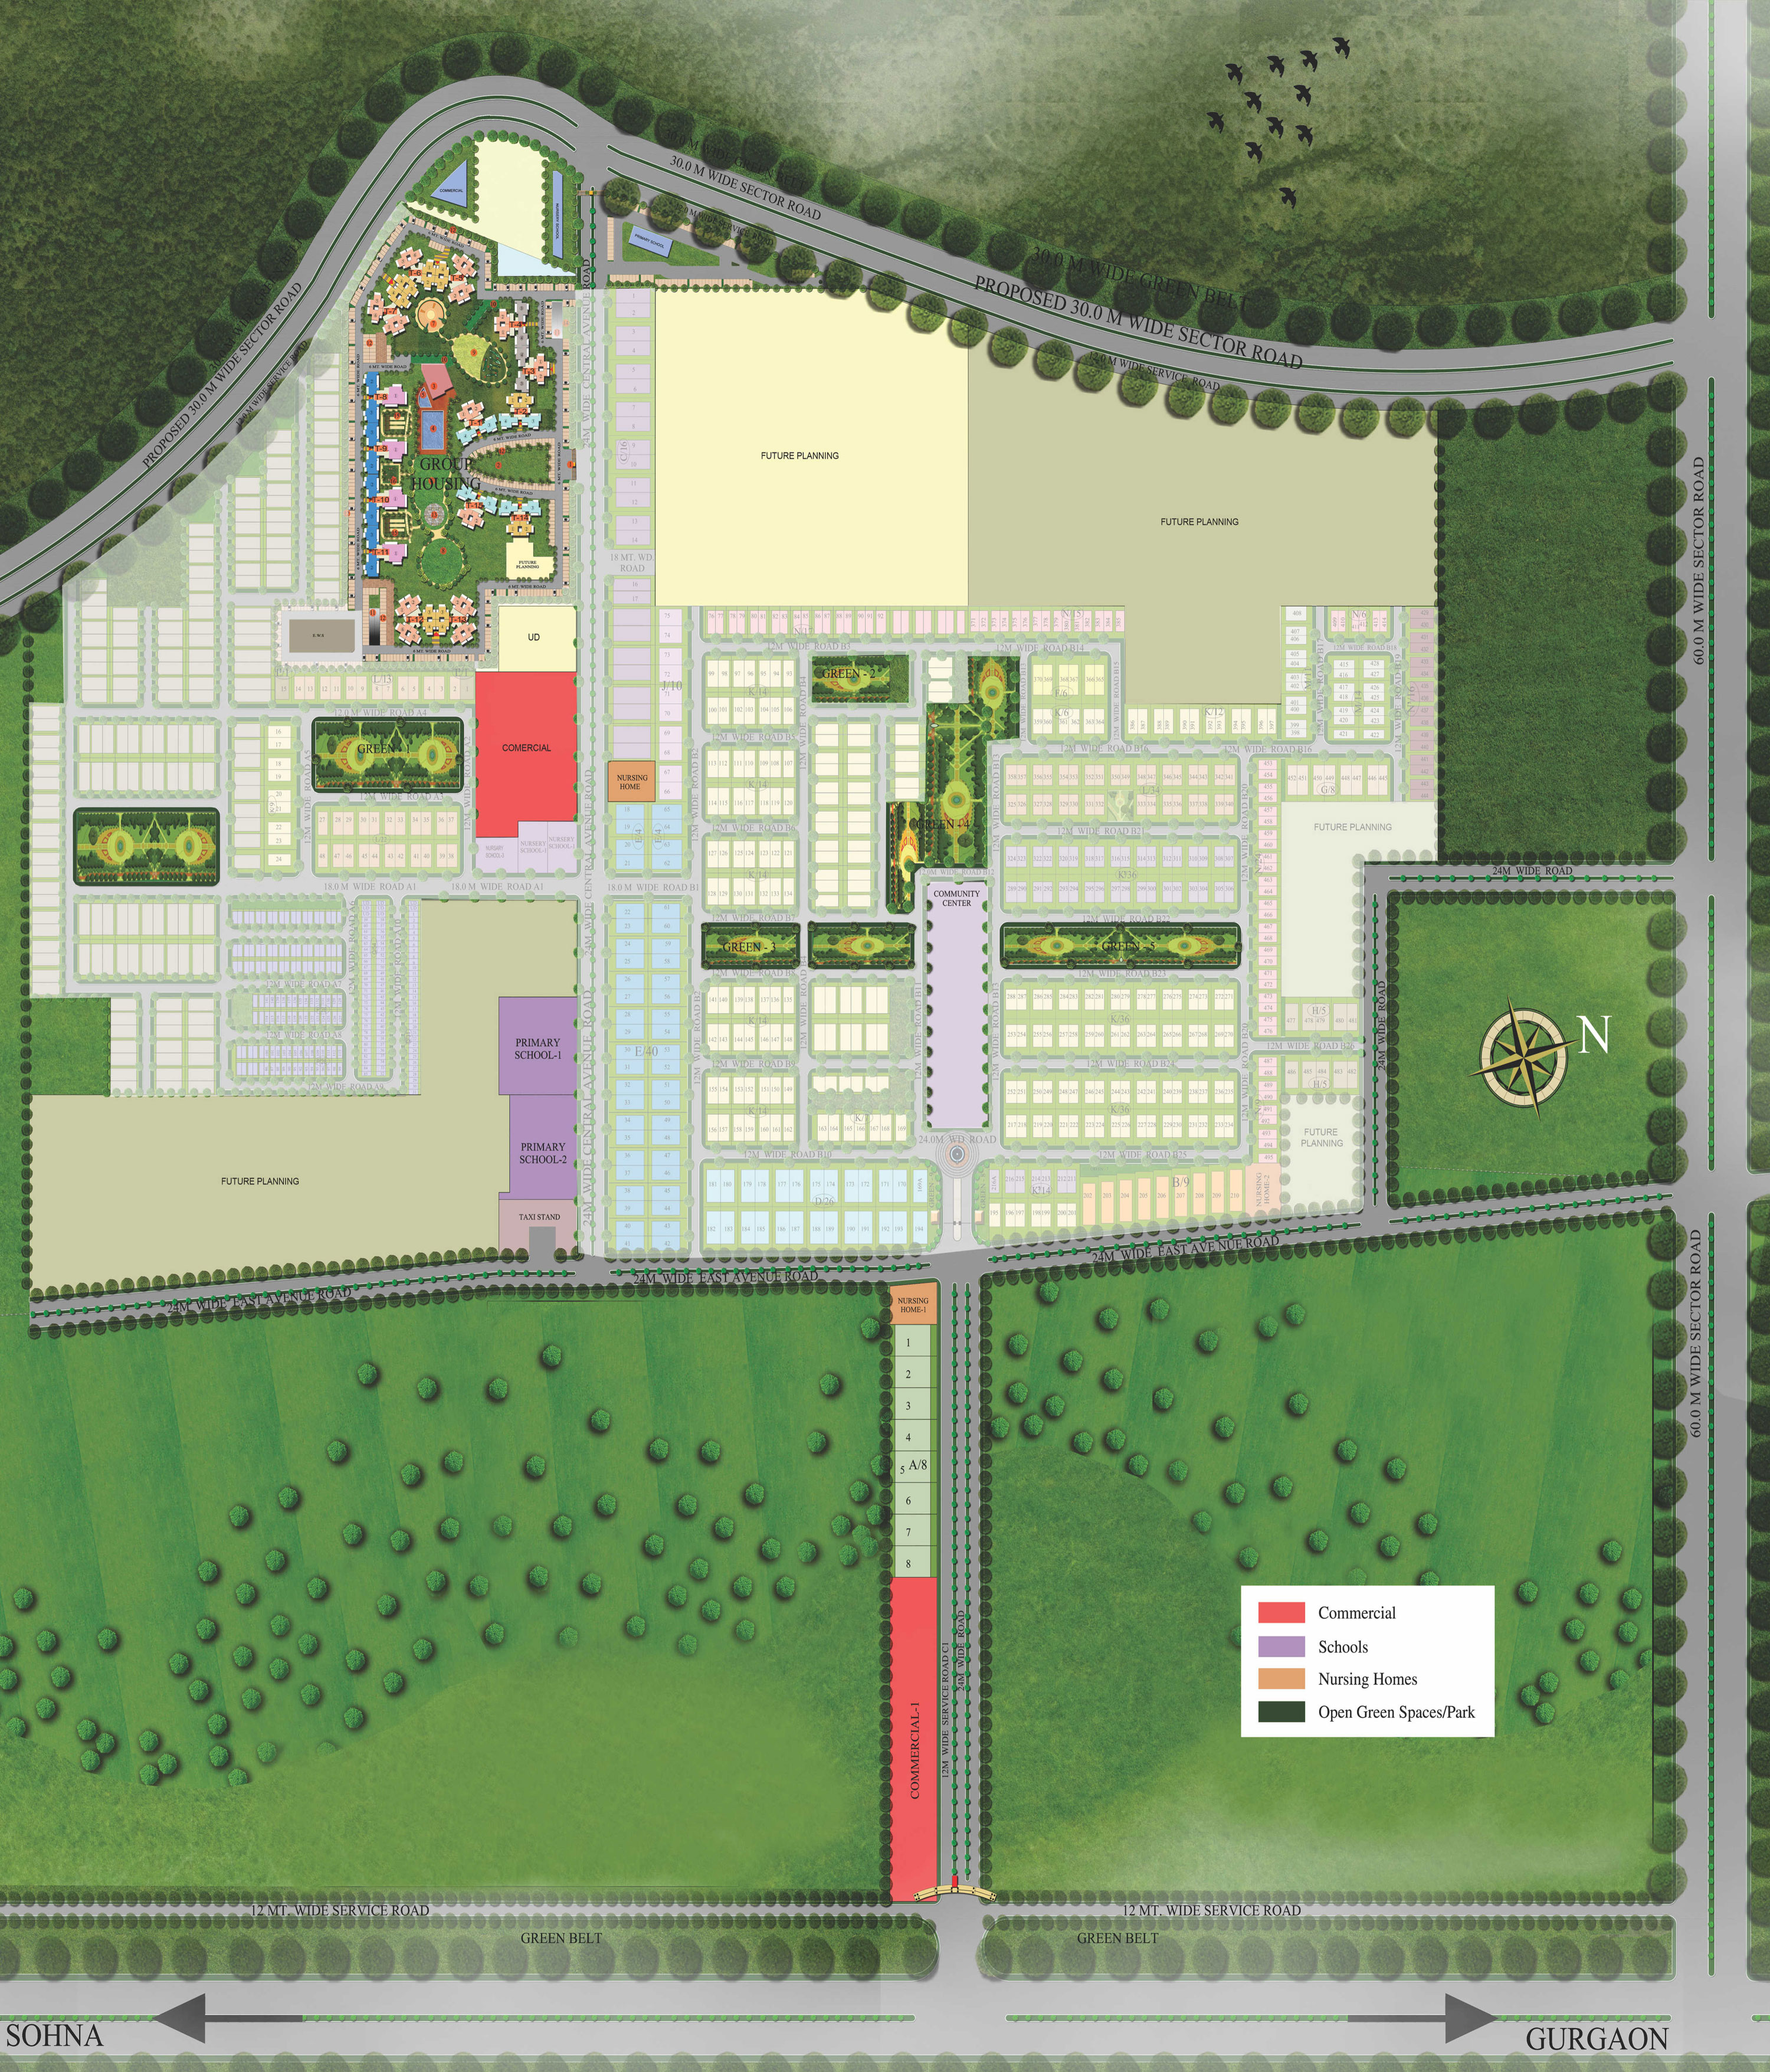 Supertech Hill TOwn site plan